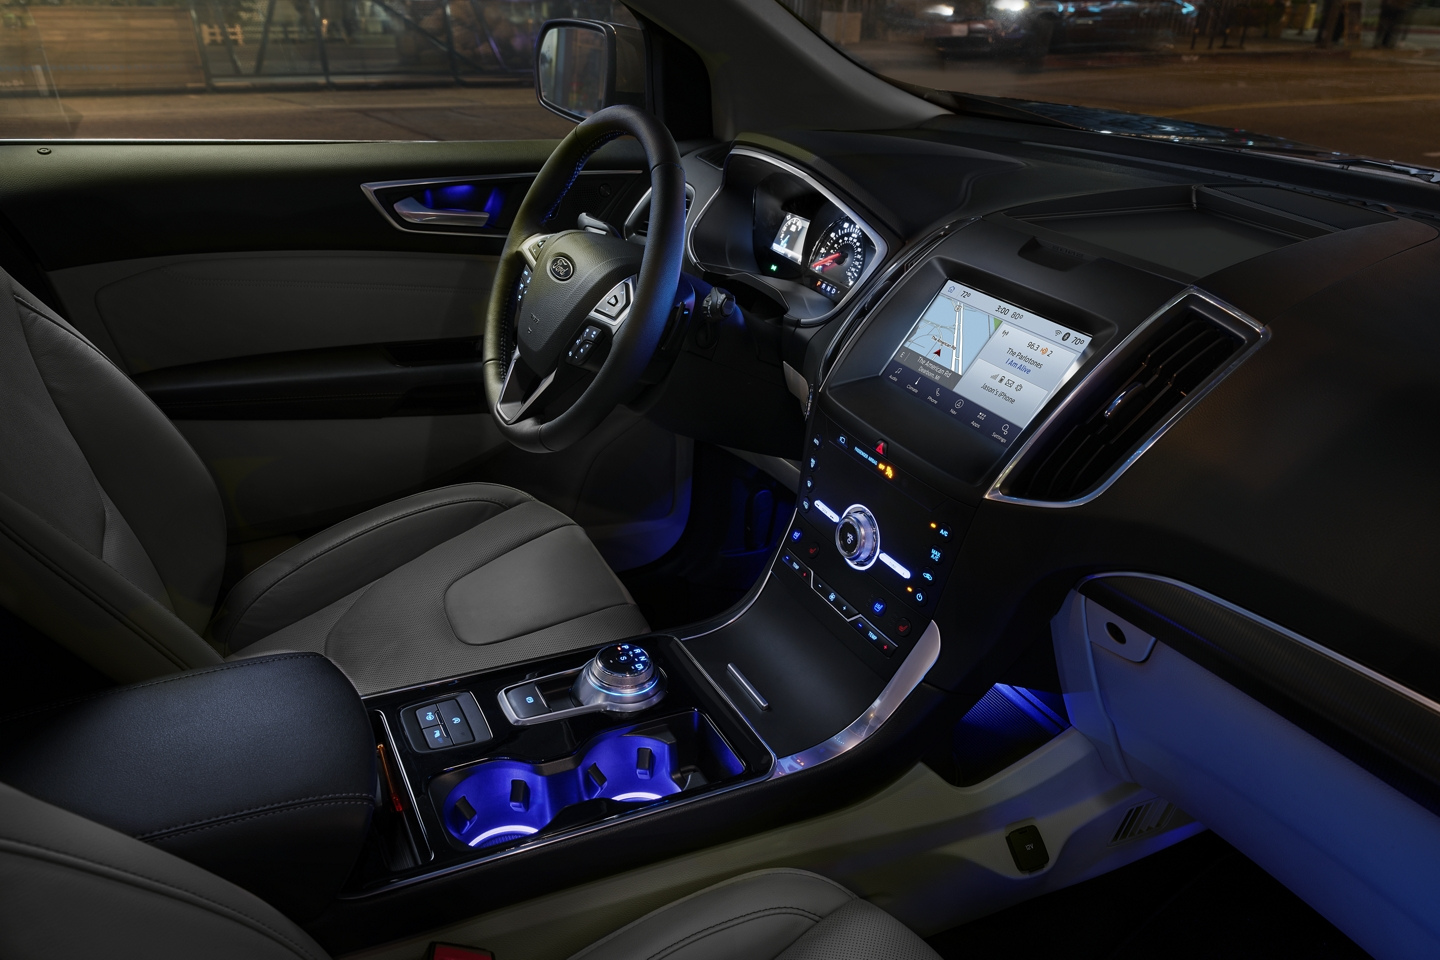 2020 Ford Edge Center Console